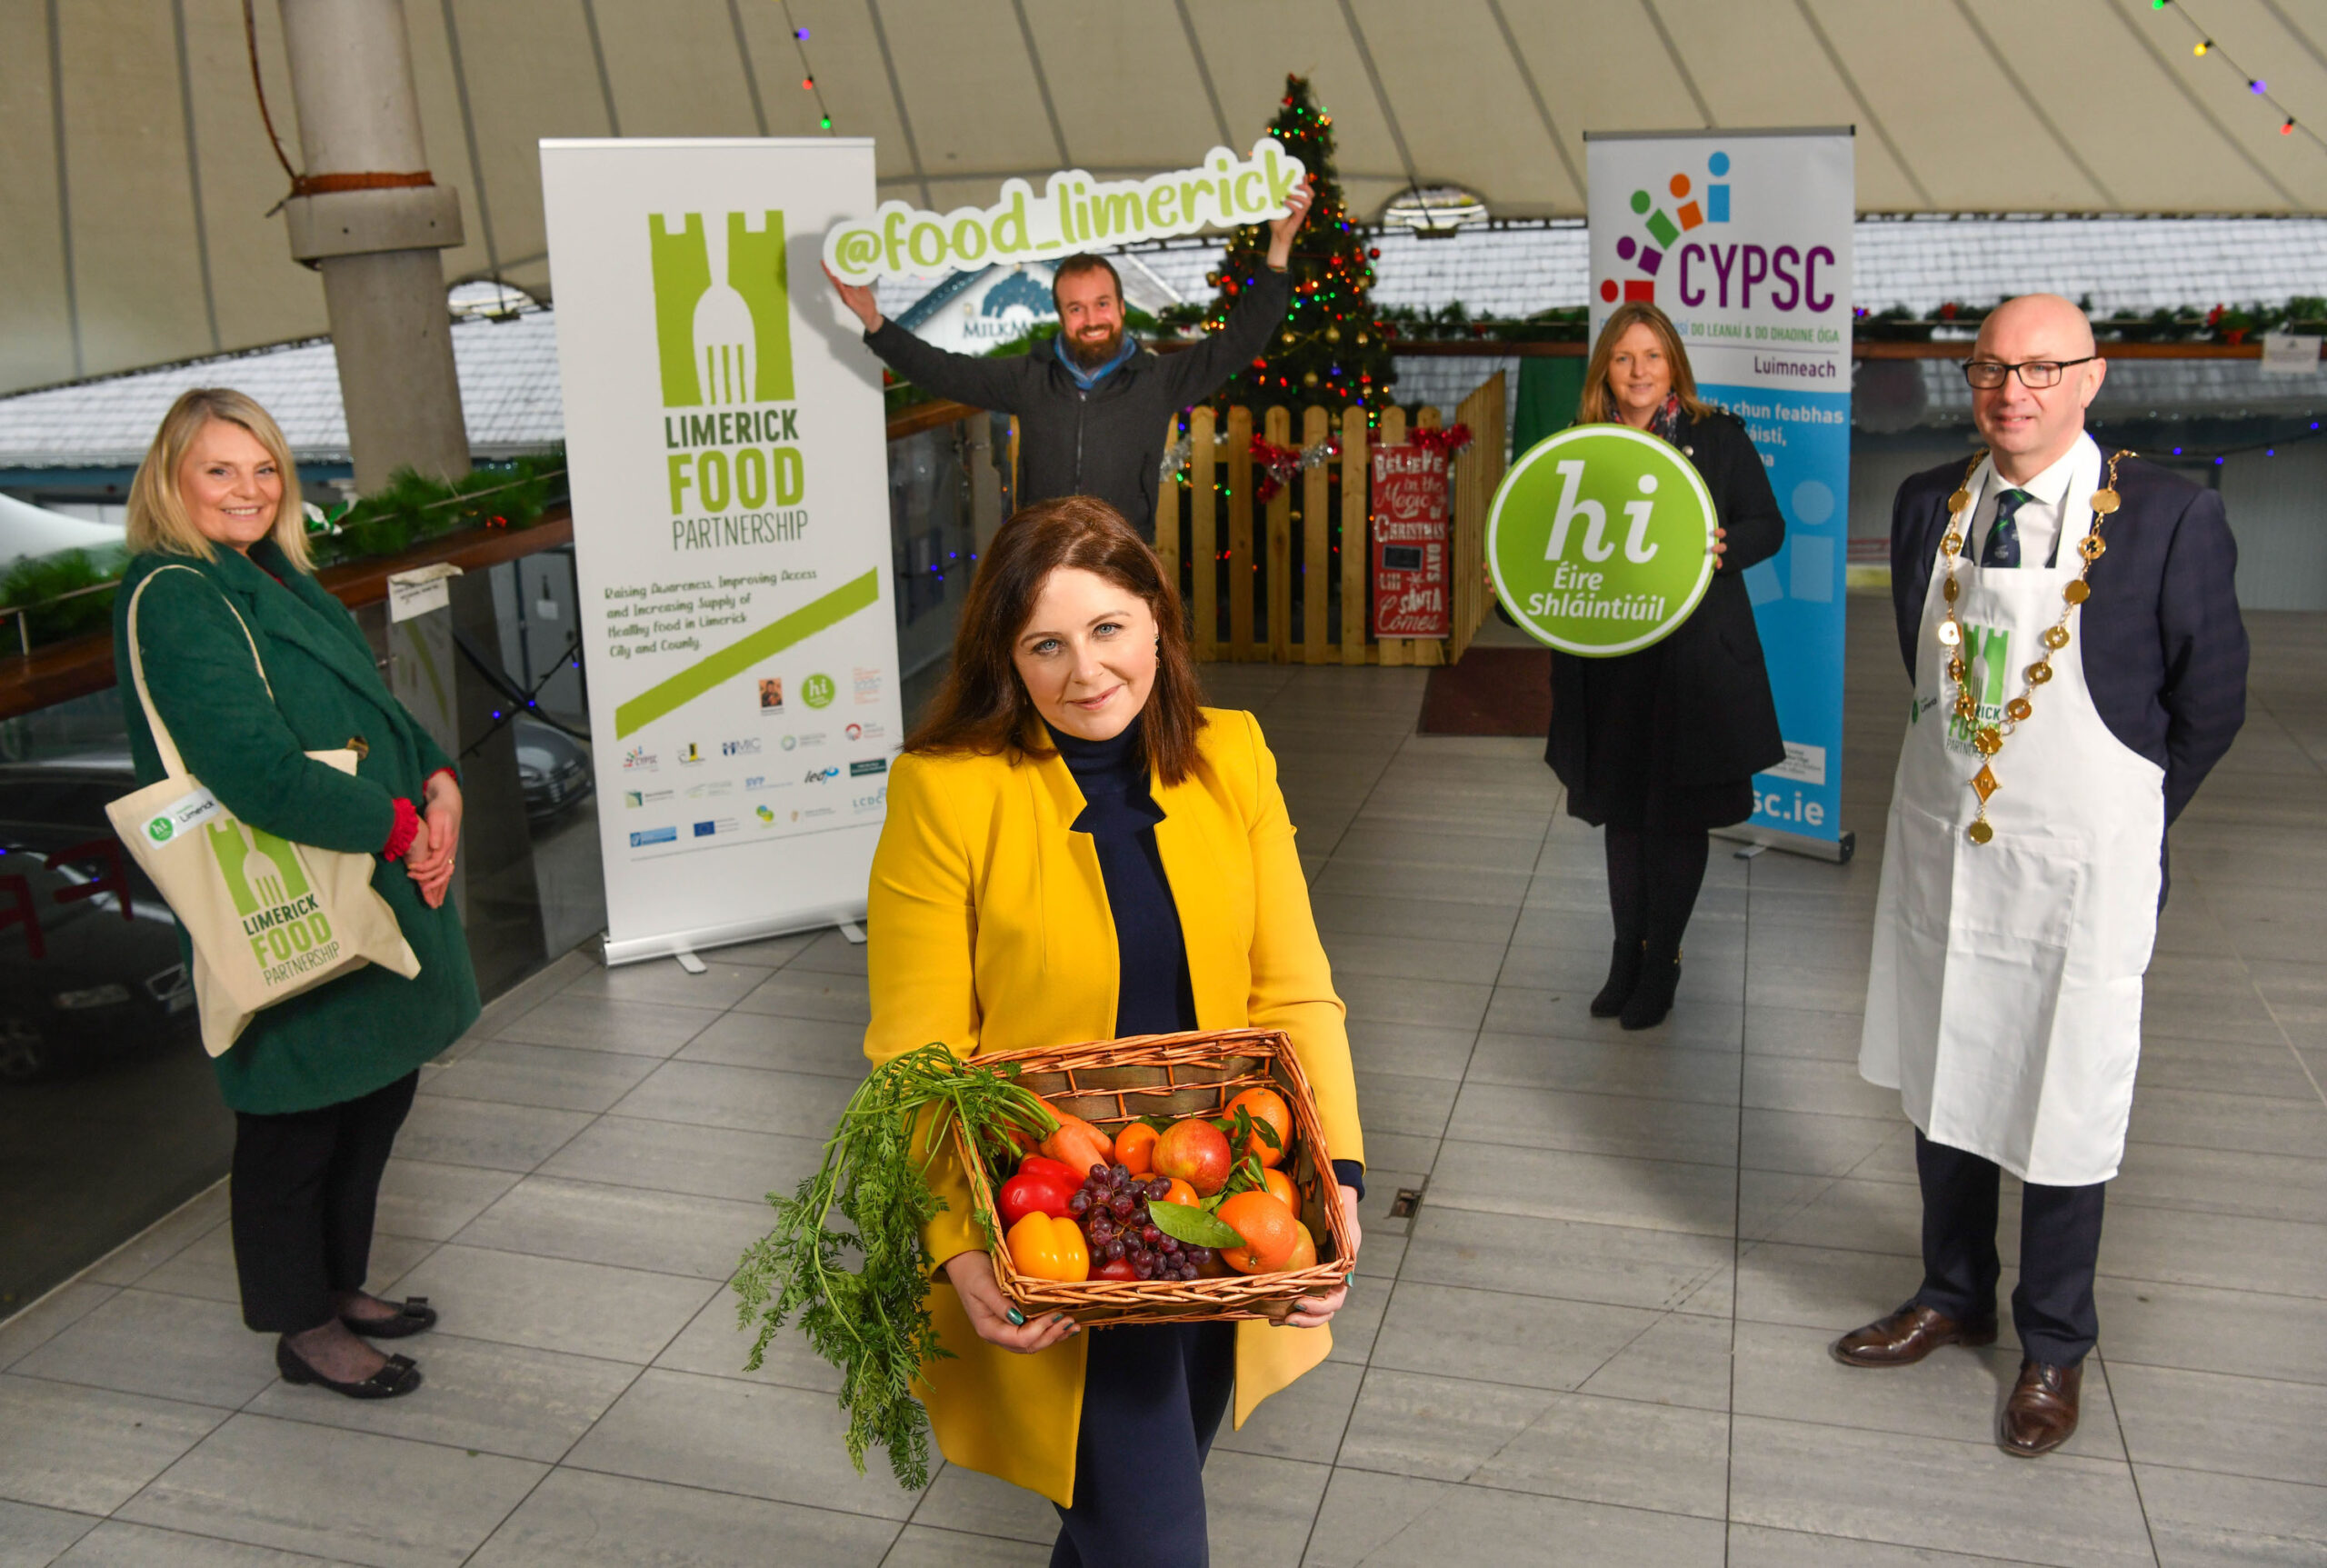 Limerick Food Partnership relaunch